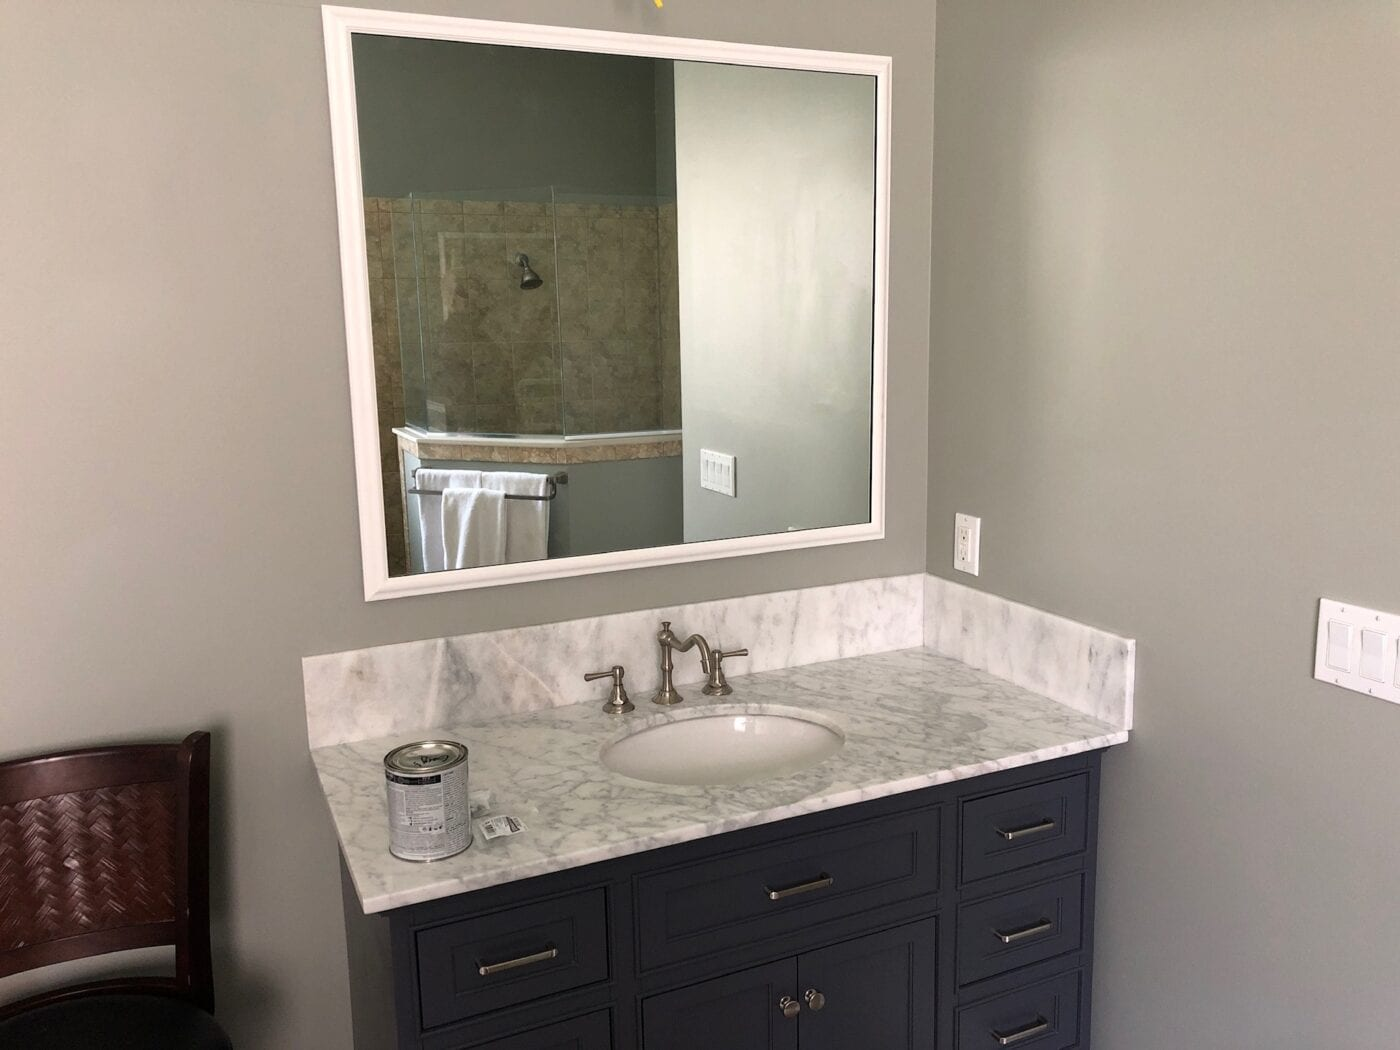 bathroom remodel vanity 2 scaled - Enjoy the Bathroom of Your Dreams with Bathroom Remodeling in Nocatee, Florida